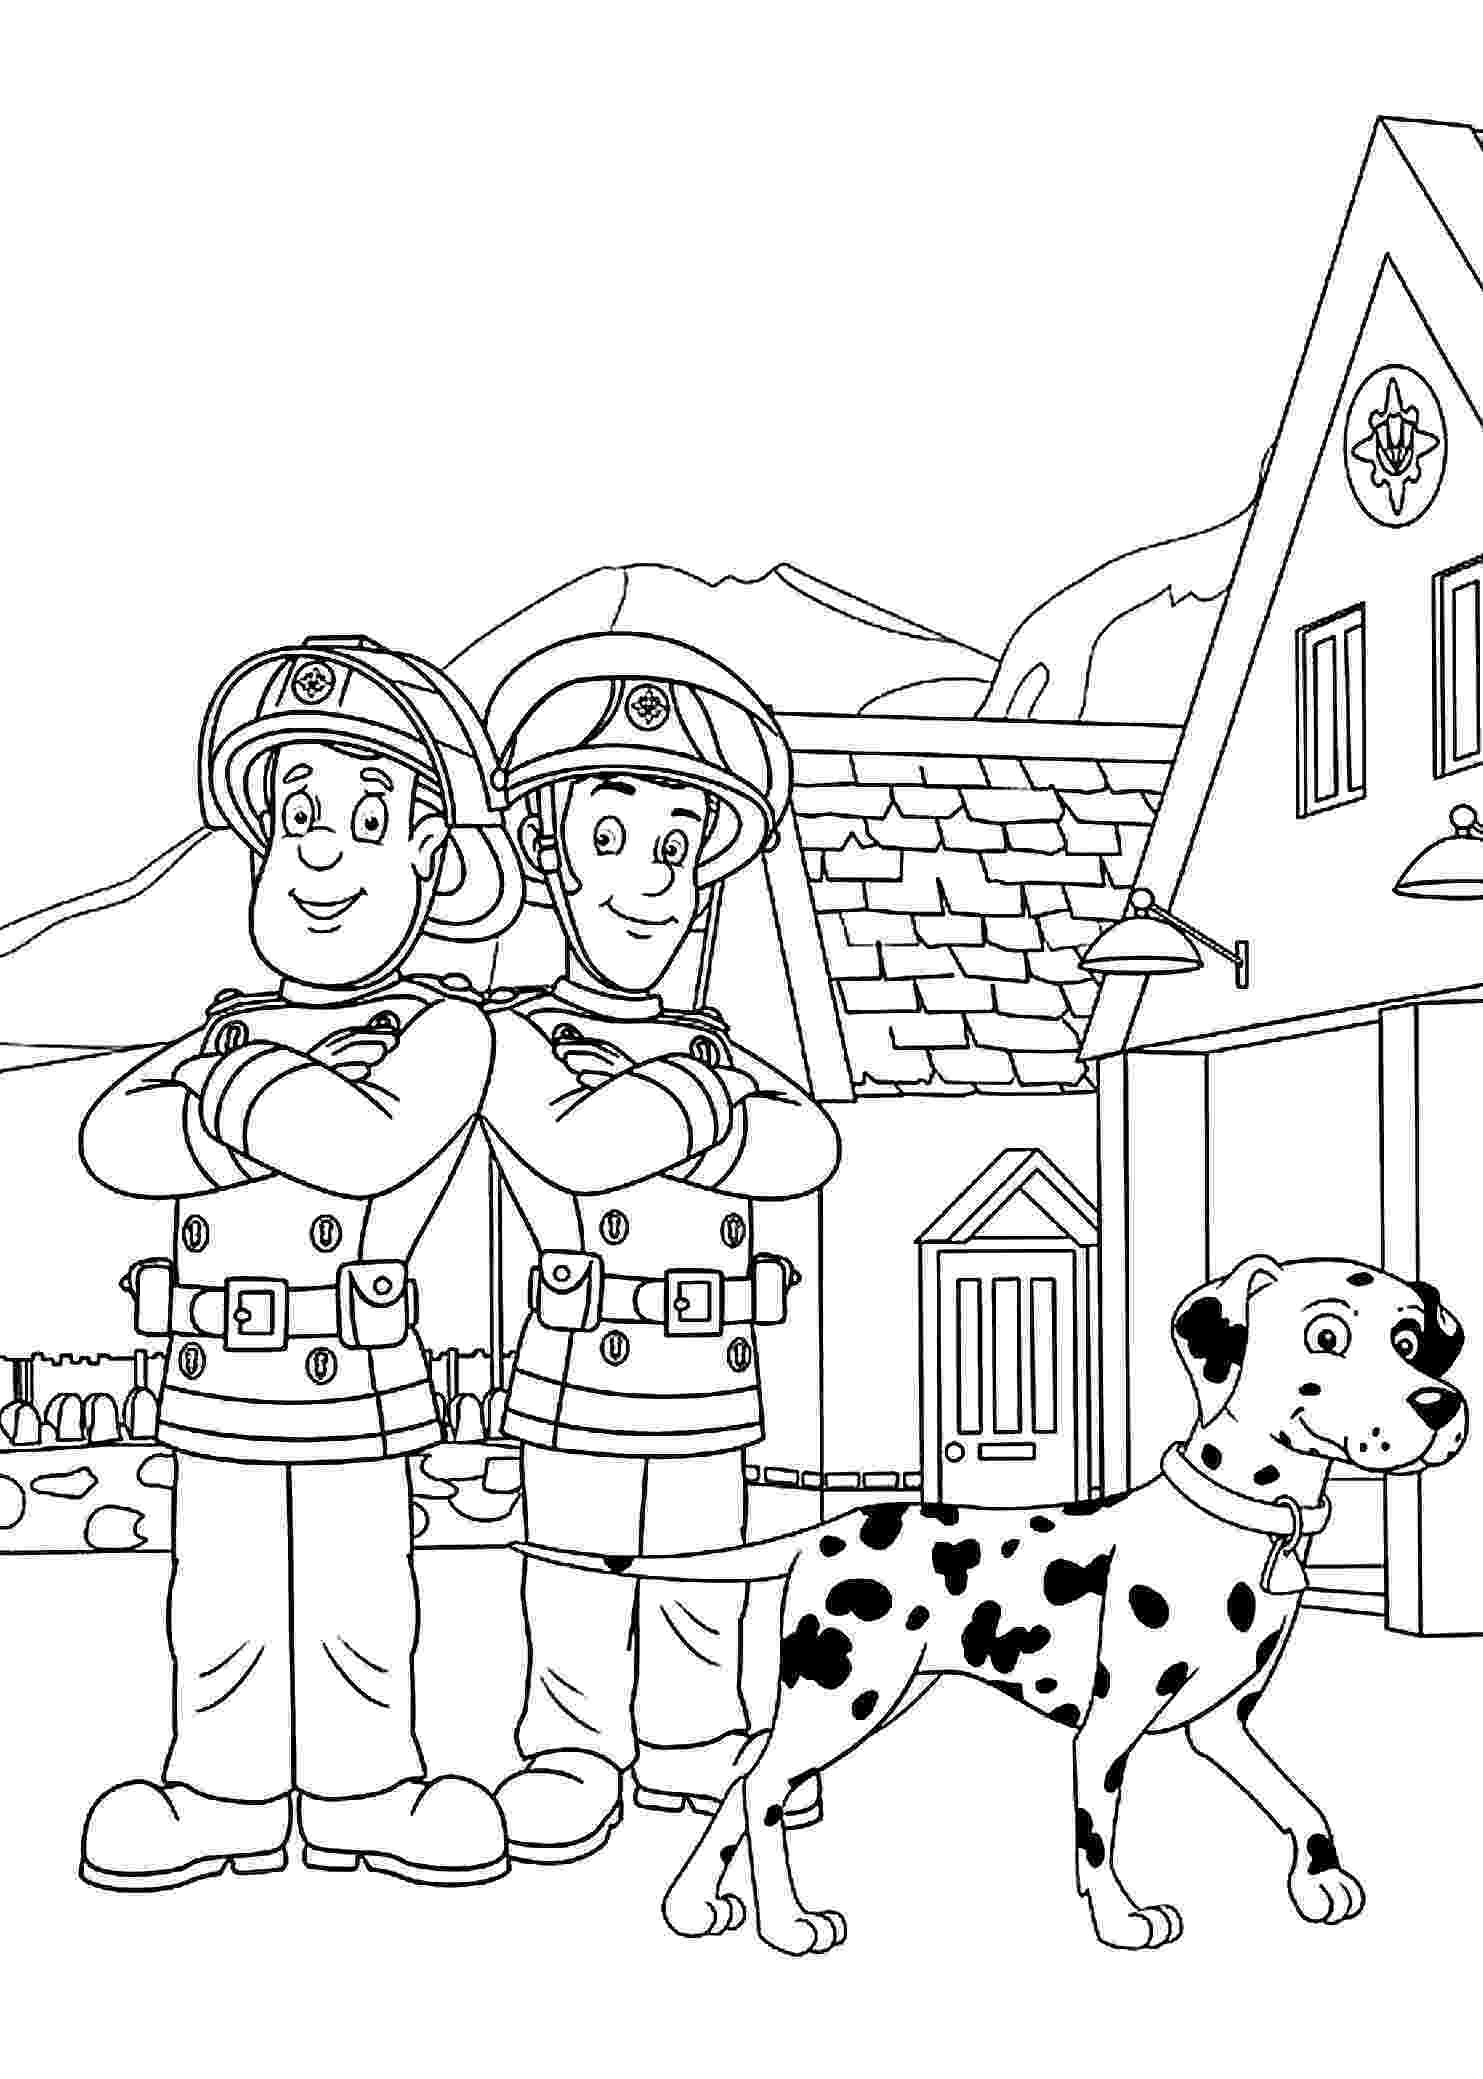 fireman coloring page firefighters coloring pages fireman page coloring